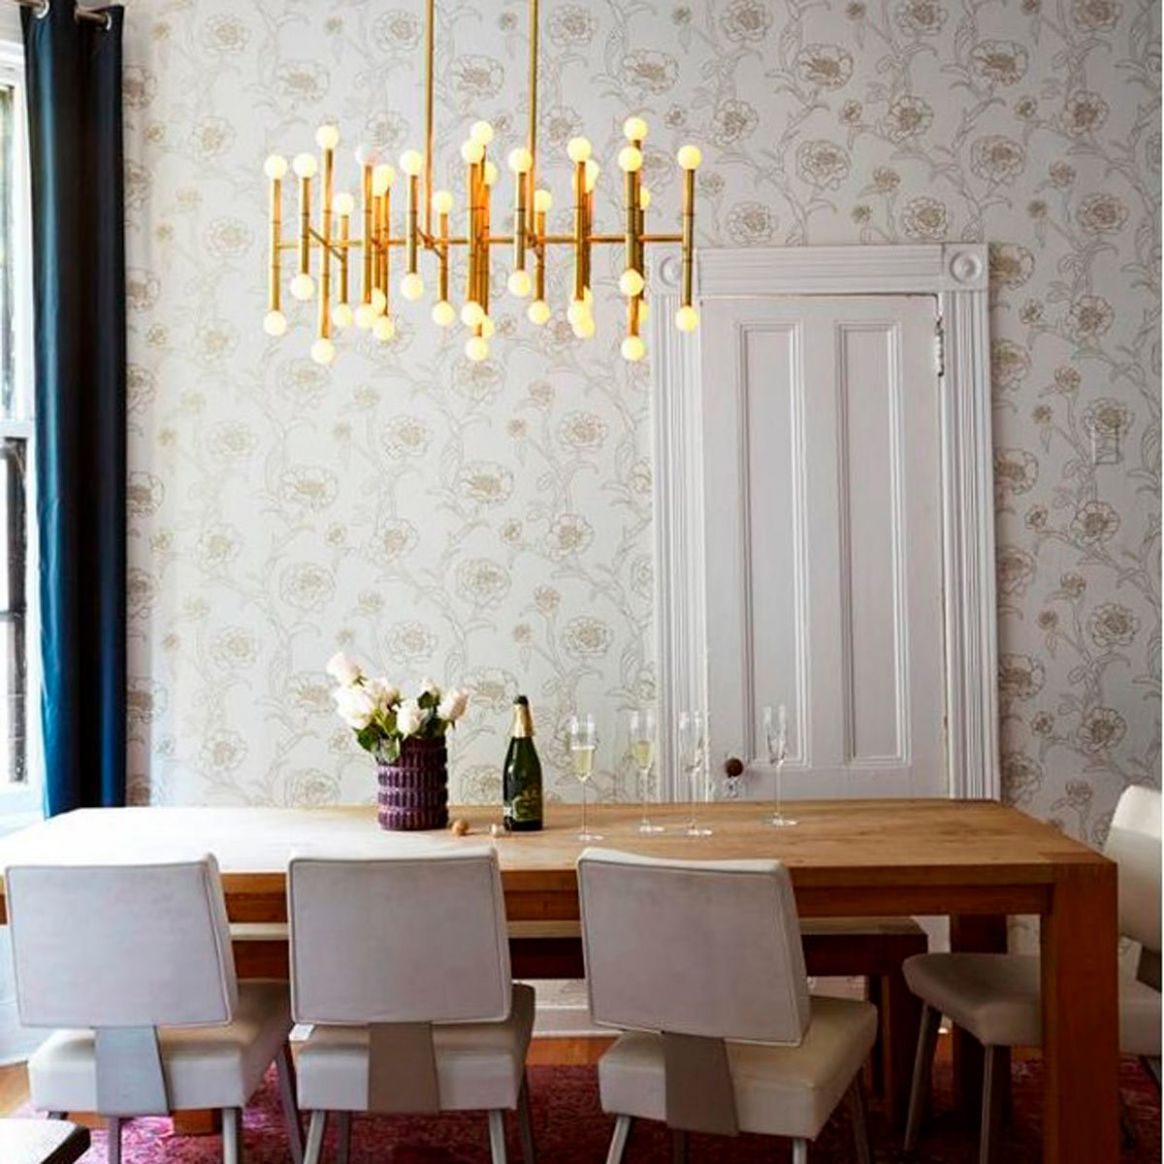 12 Clever Small Dining Room Ideas | Taste of Home